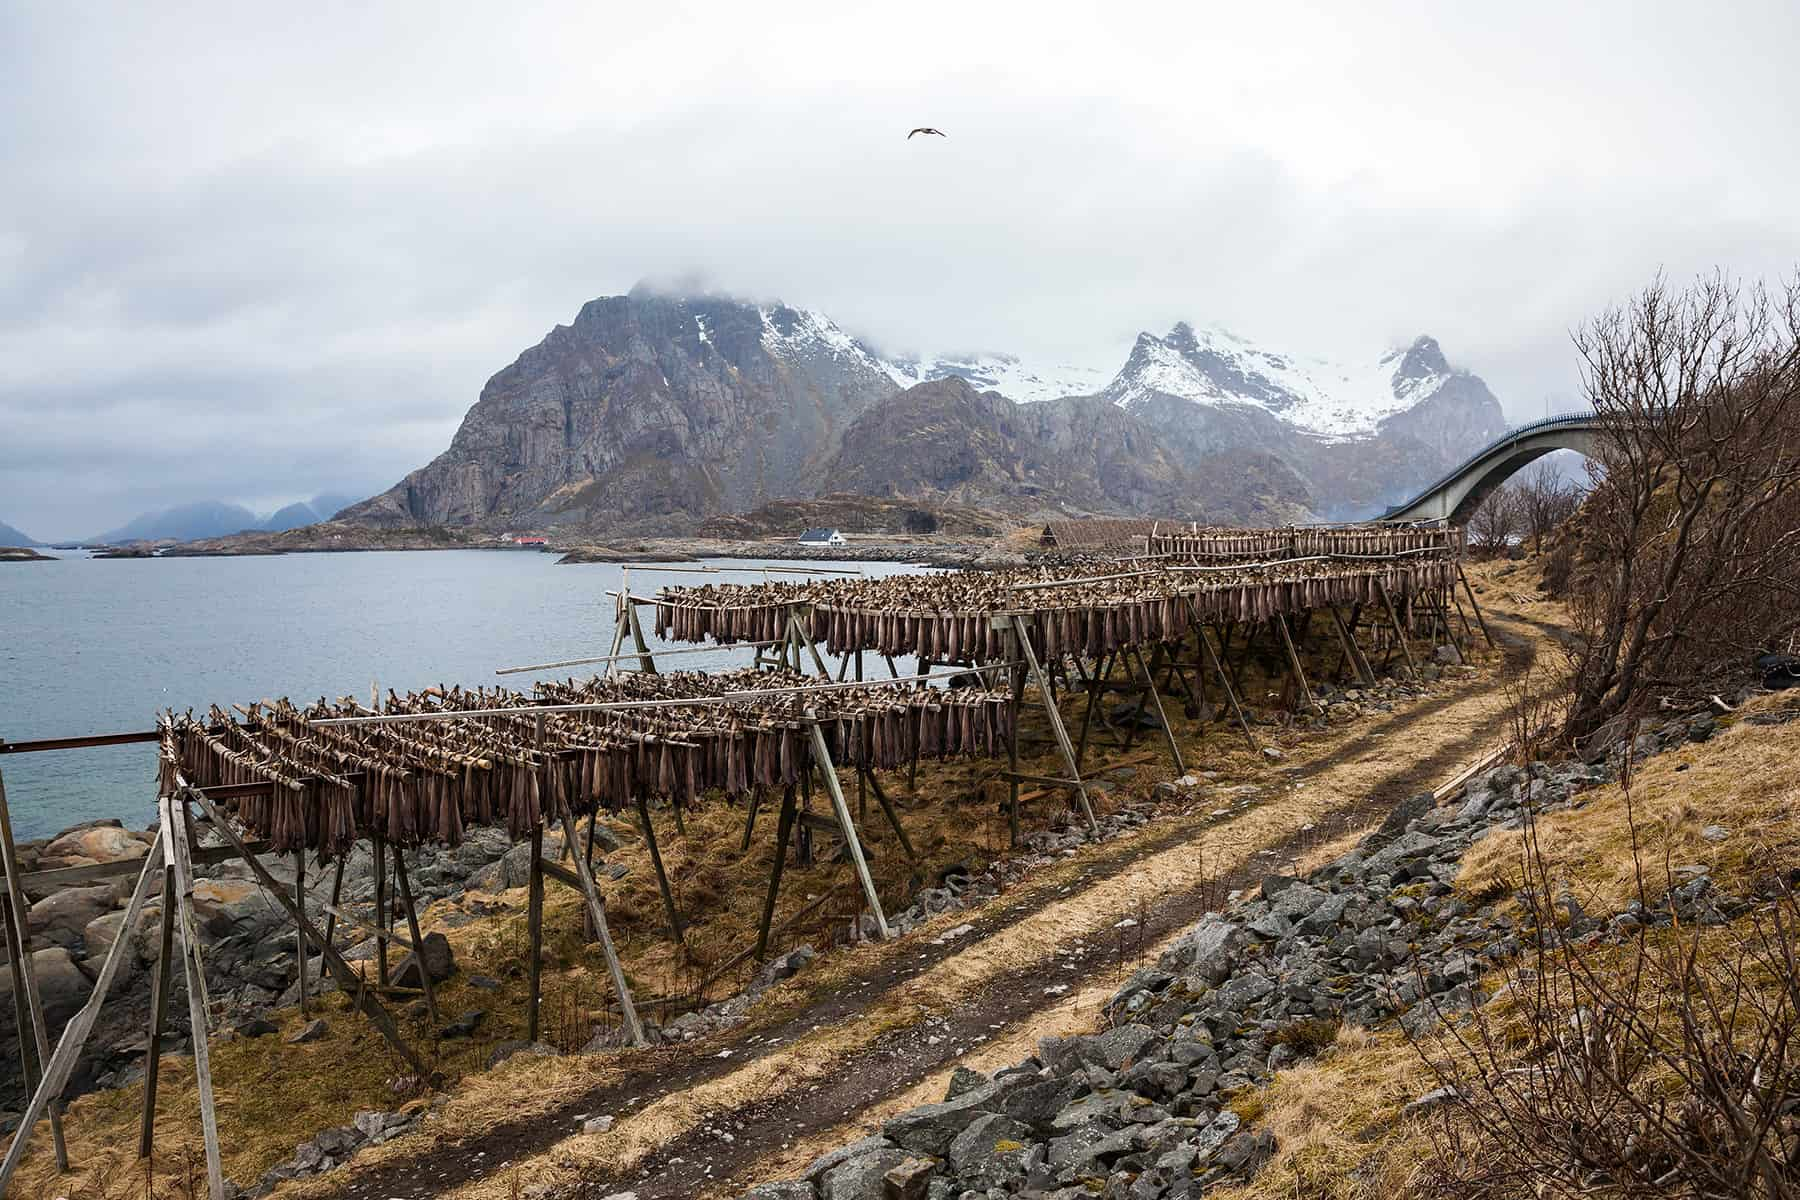 Henningsvær in Lofoten islands is an important place for the fish trade. In the spring there is a lot of stockfish to see.